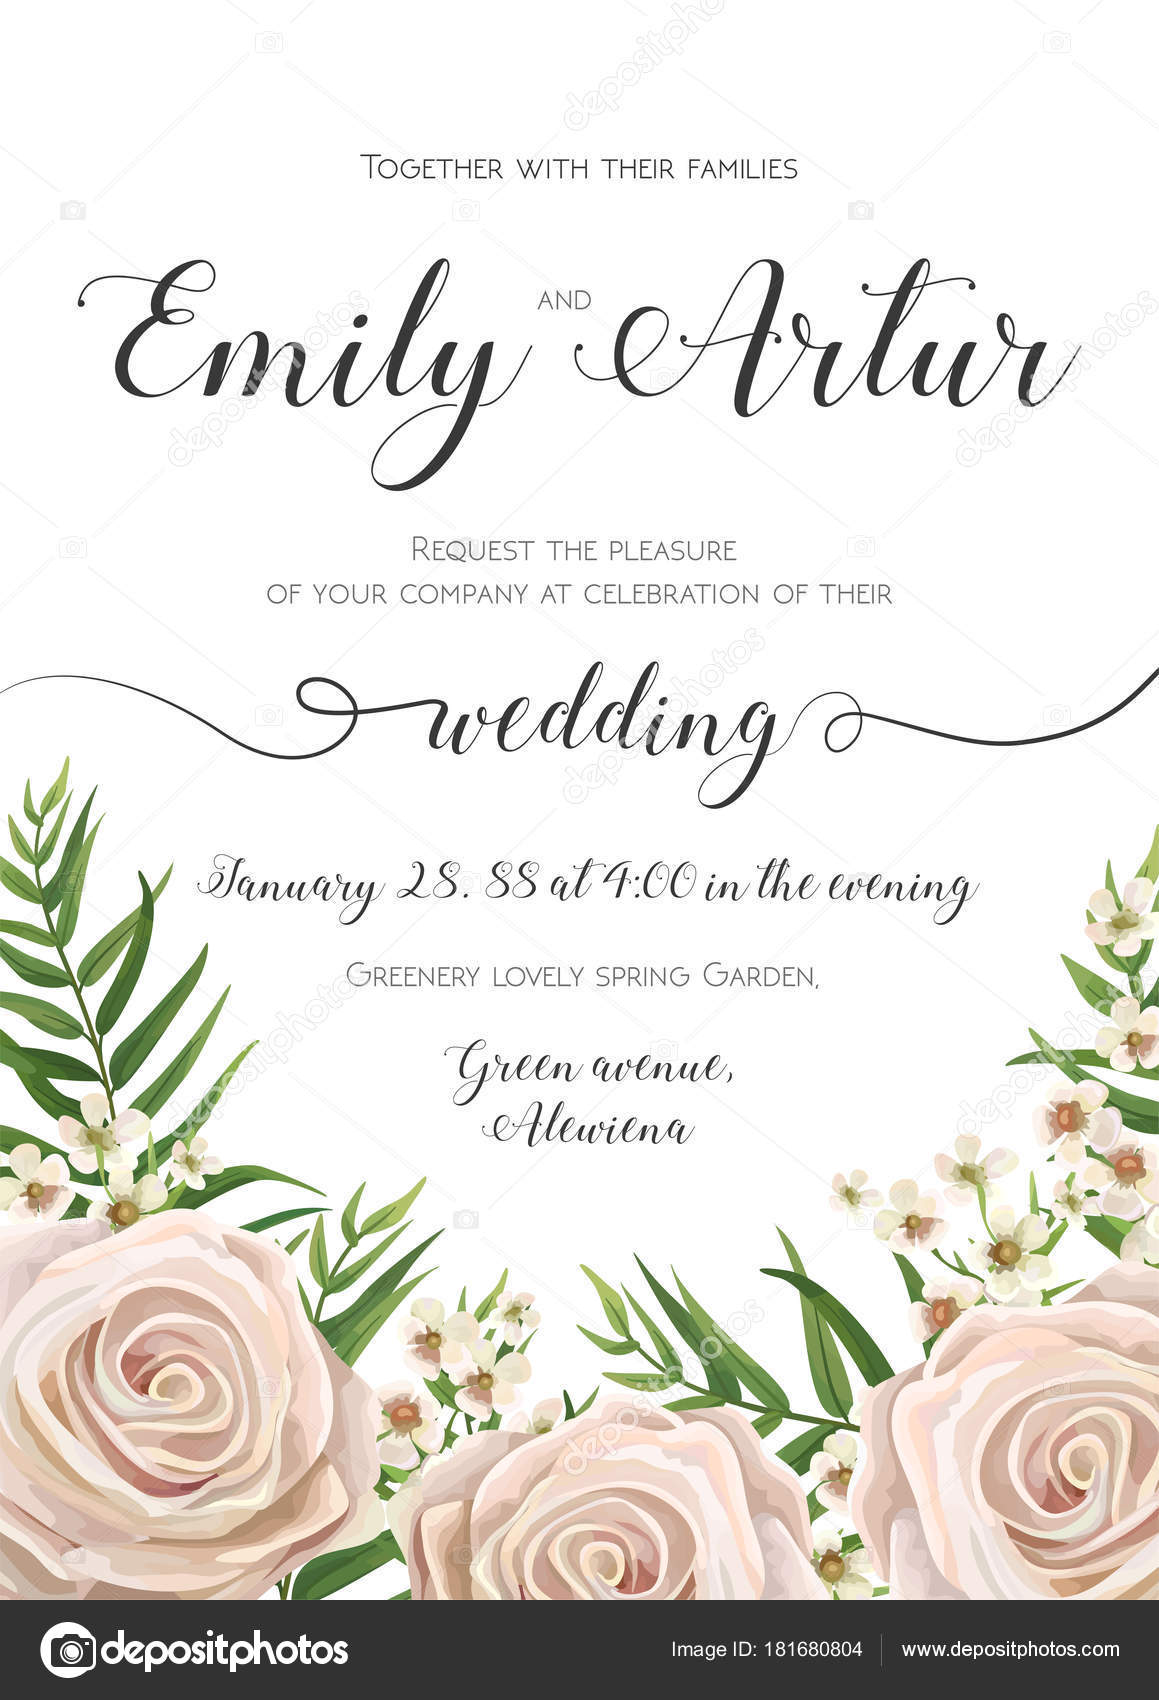 Wedding Invitation floral invite card Design with creamy white